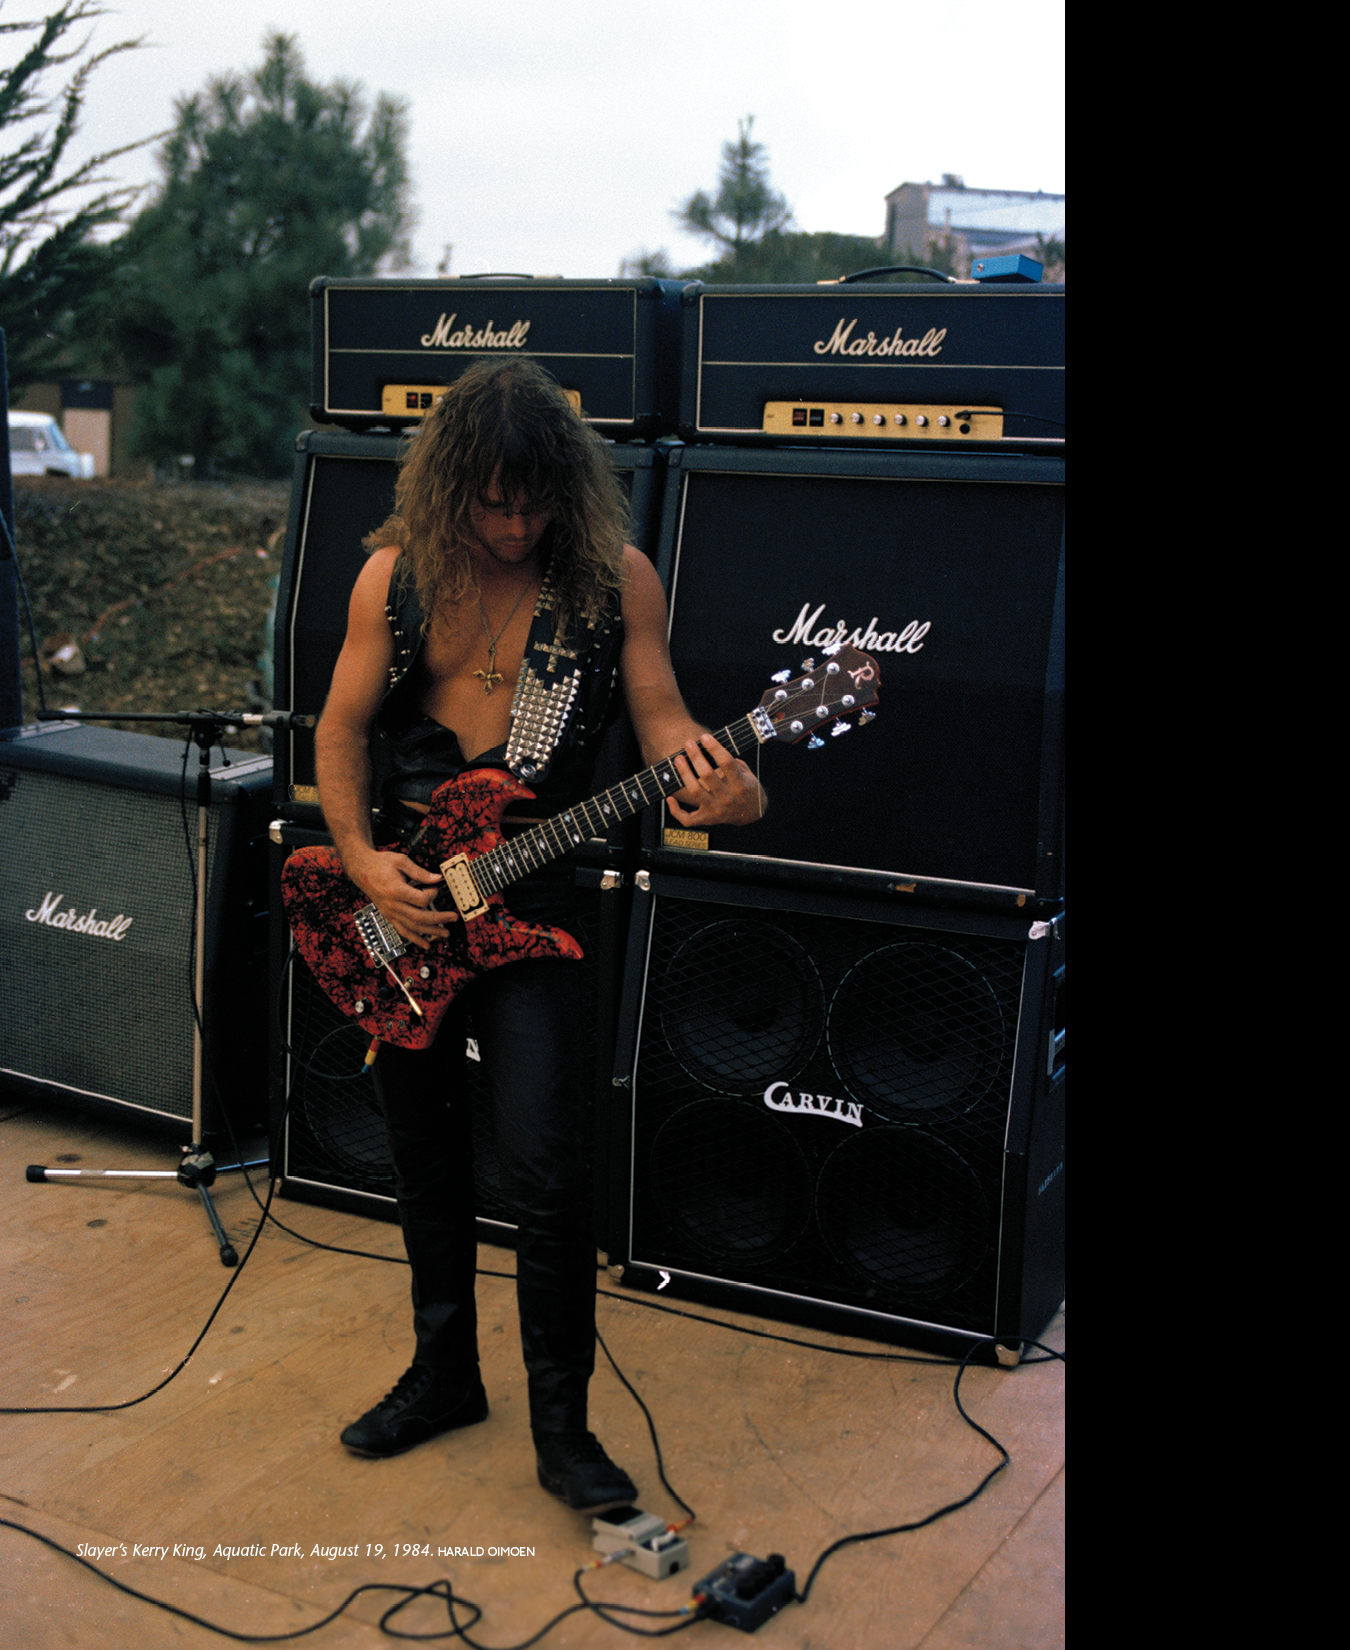 SLAYER's JMPs, where are they now? p. 130 from MURDER IN THE FRONT ROW, pic: Harald Oimoen, 08/19/1984